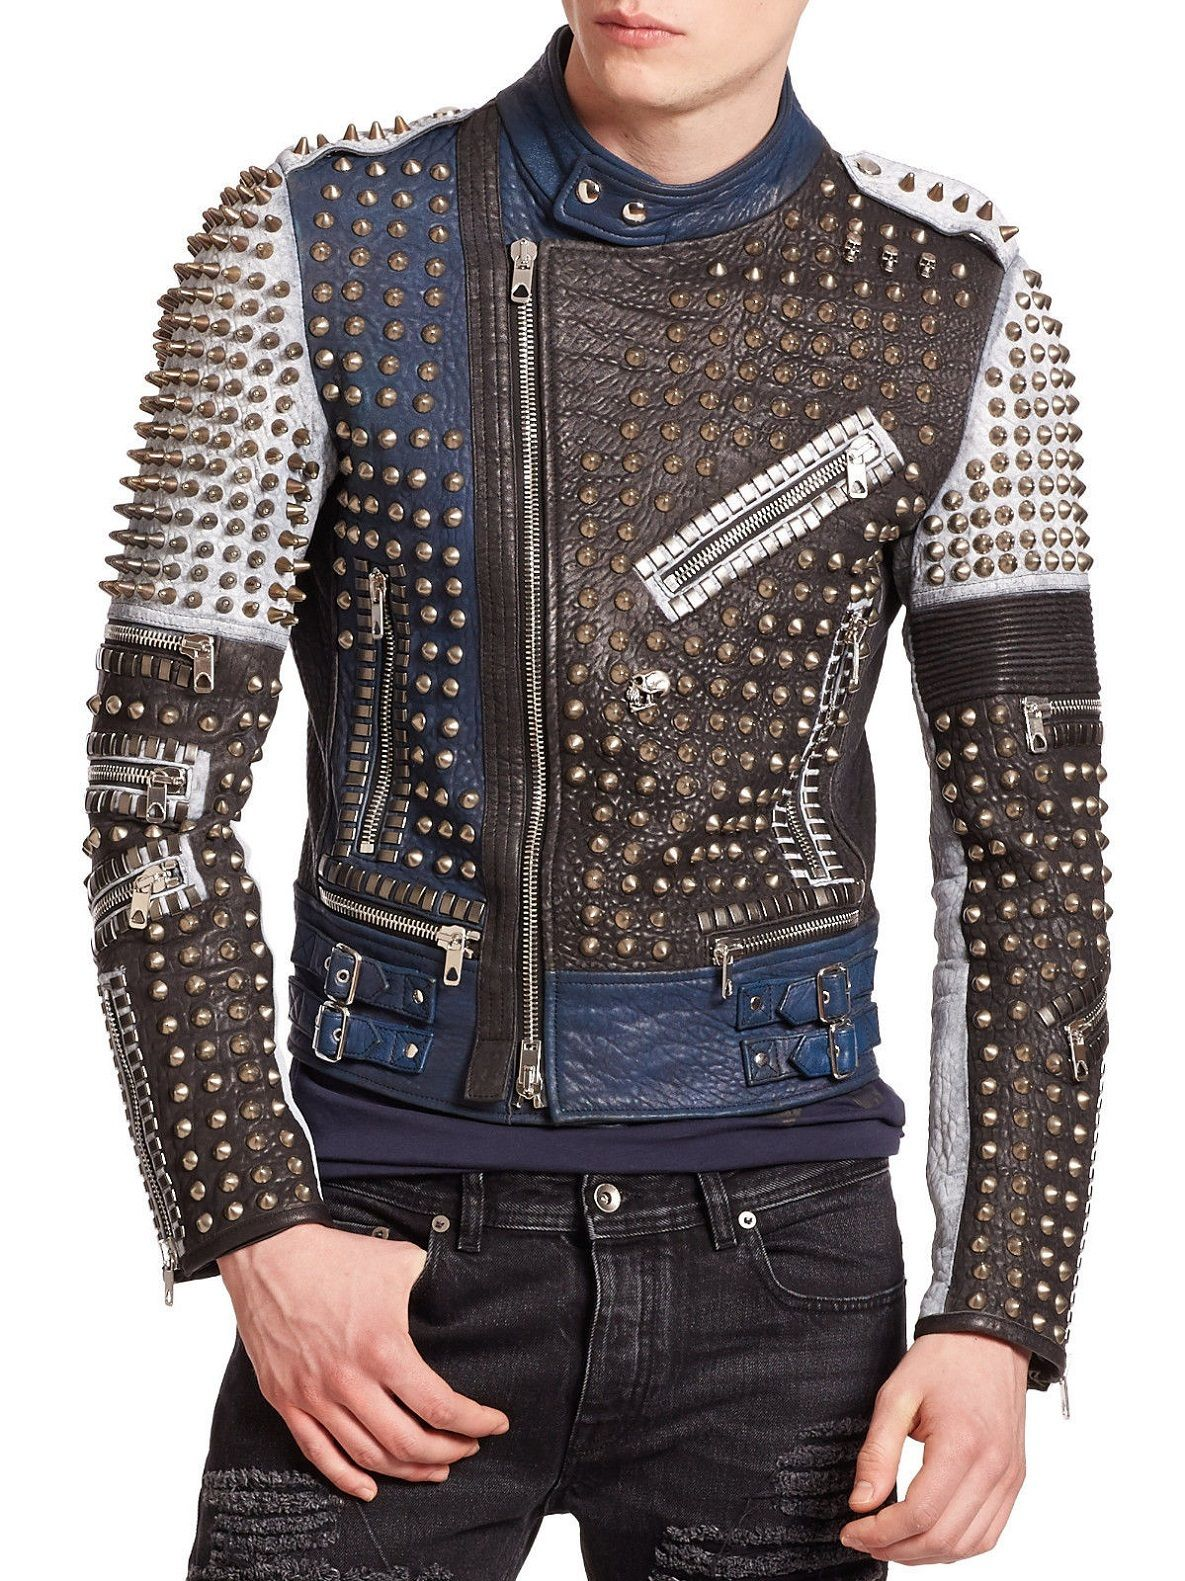 067a89665 Fine Leather Custom Made bikers Jacket For all those Riders who want ...